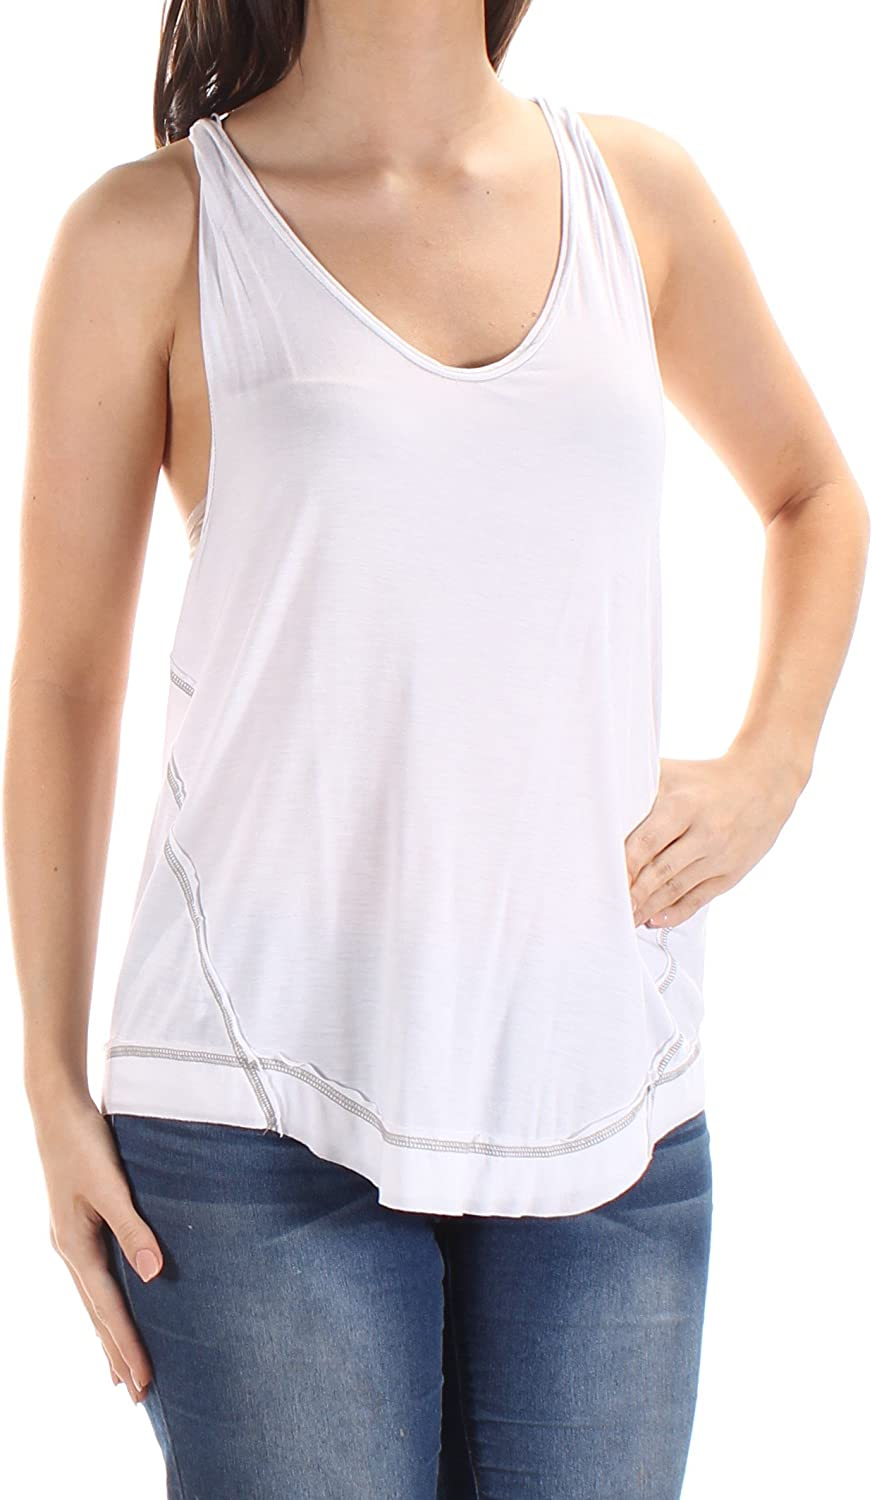 We The Free Womens Nectarine Sleeveless Rayon Tank Top White Small At Amazon Women S Clothing Store